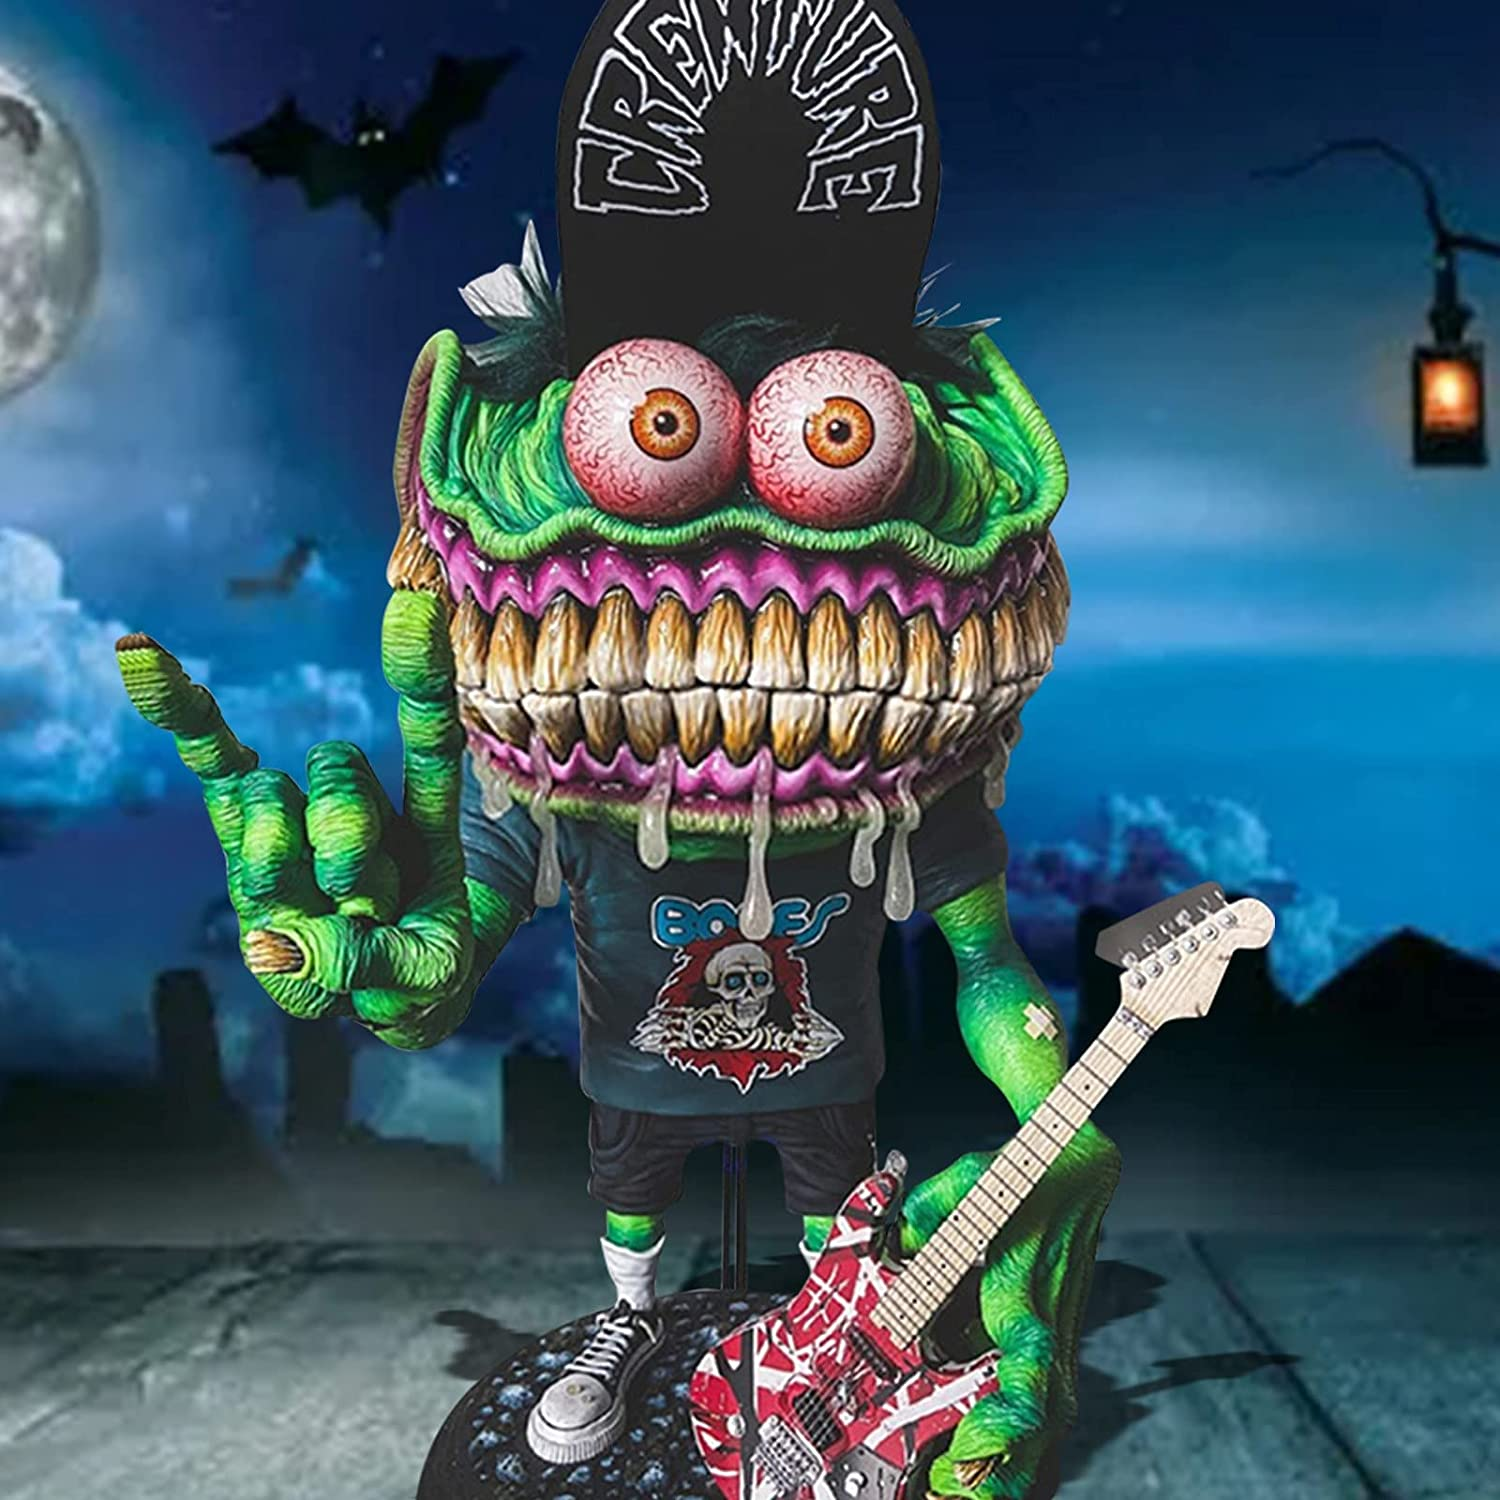 Halloween Decoration Special price OFFicial Angry Big Statue Mouth Figurines Eccentric